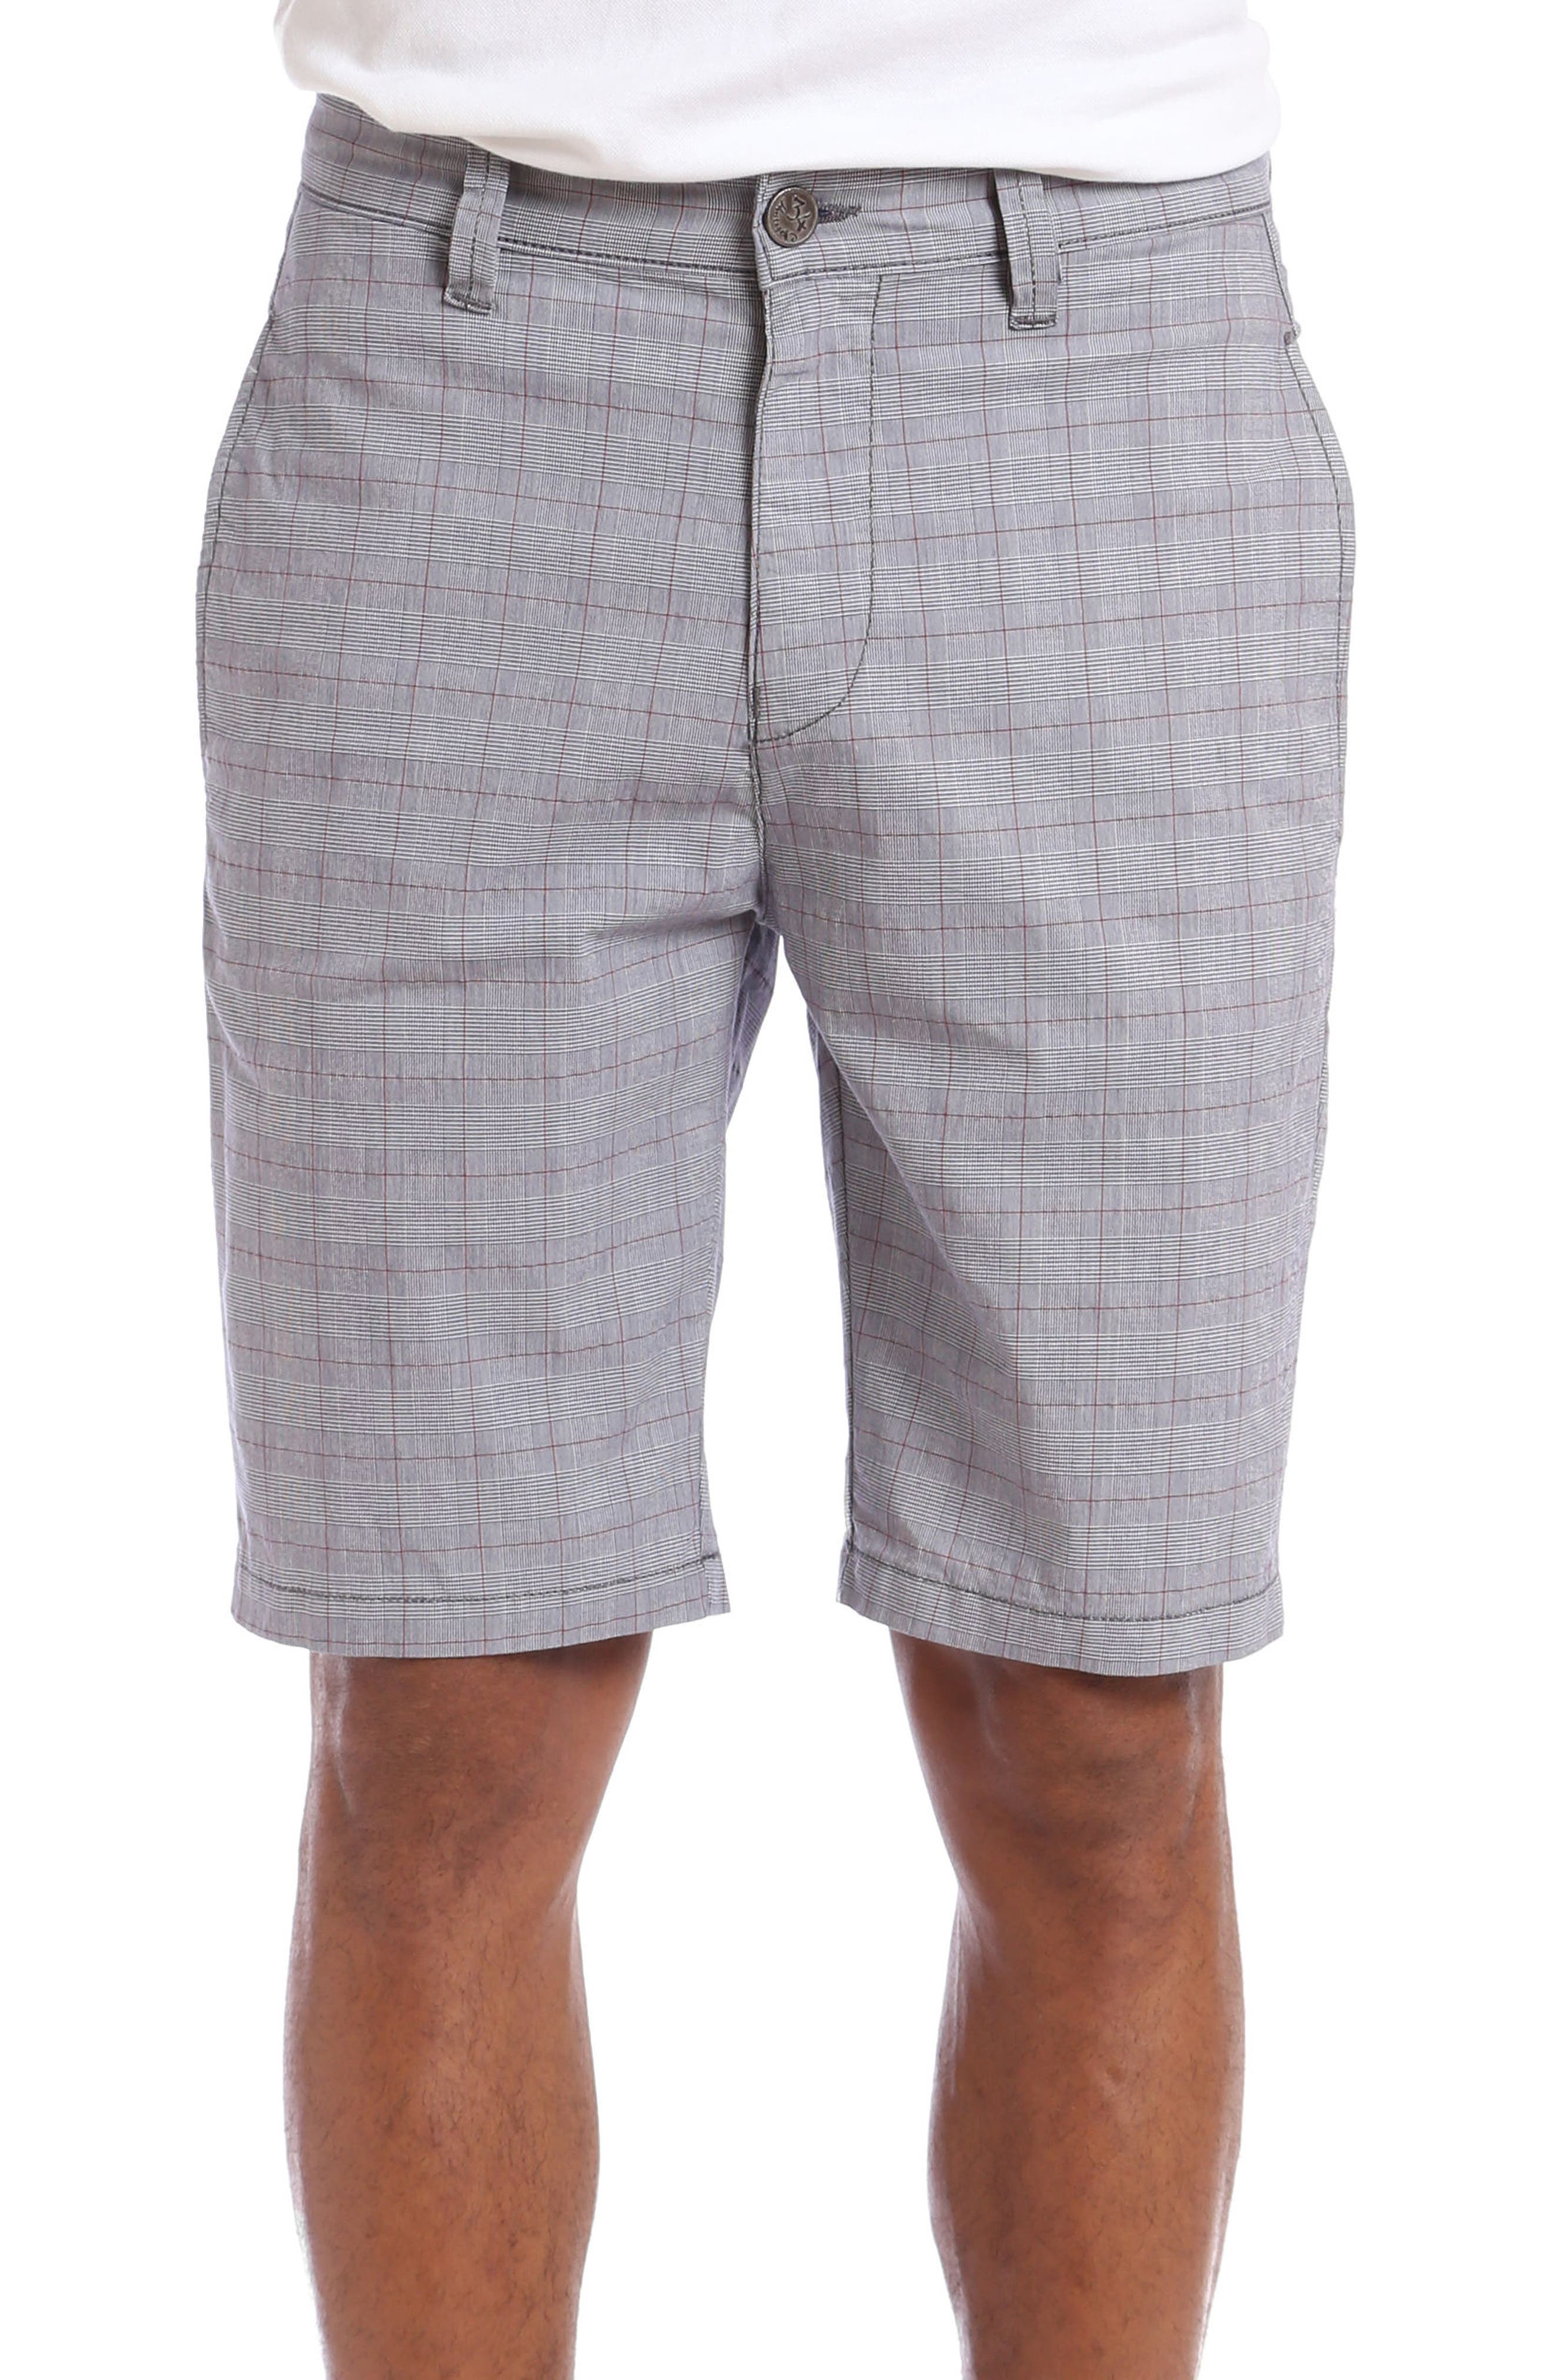 Nevada Twill Shorts,                             Main thumbnail 1, color,                             Grey Plaid